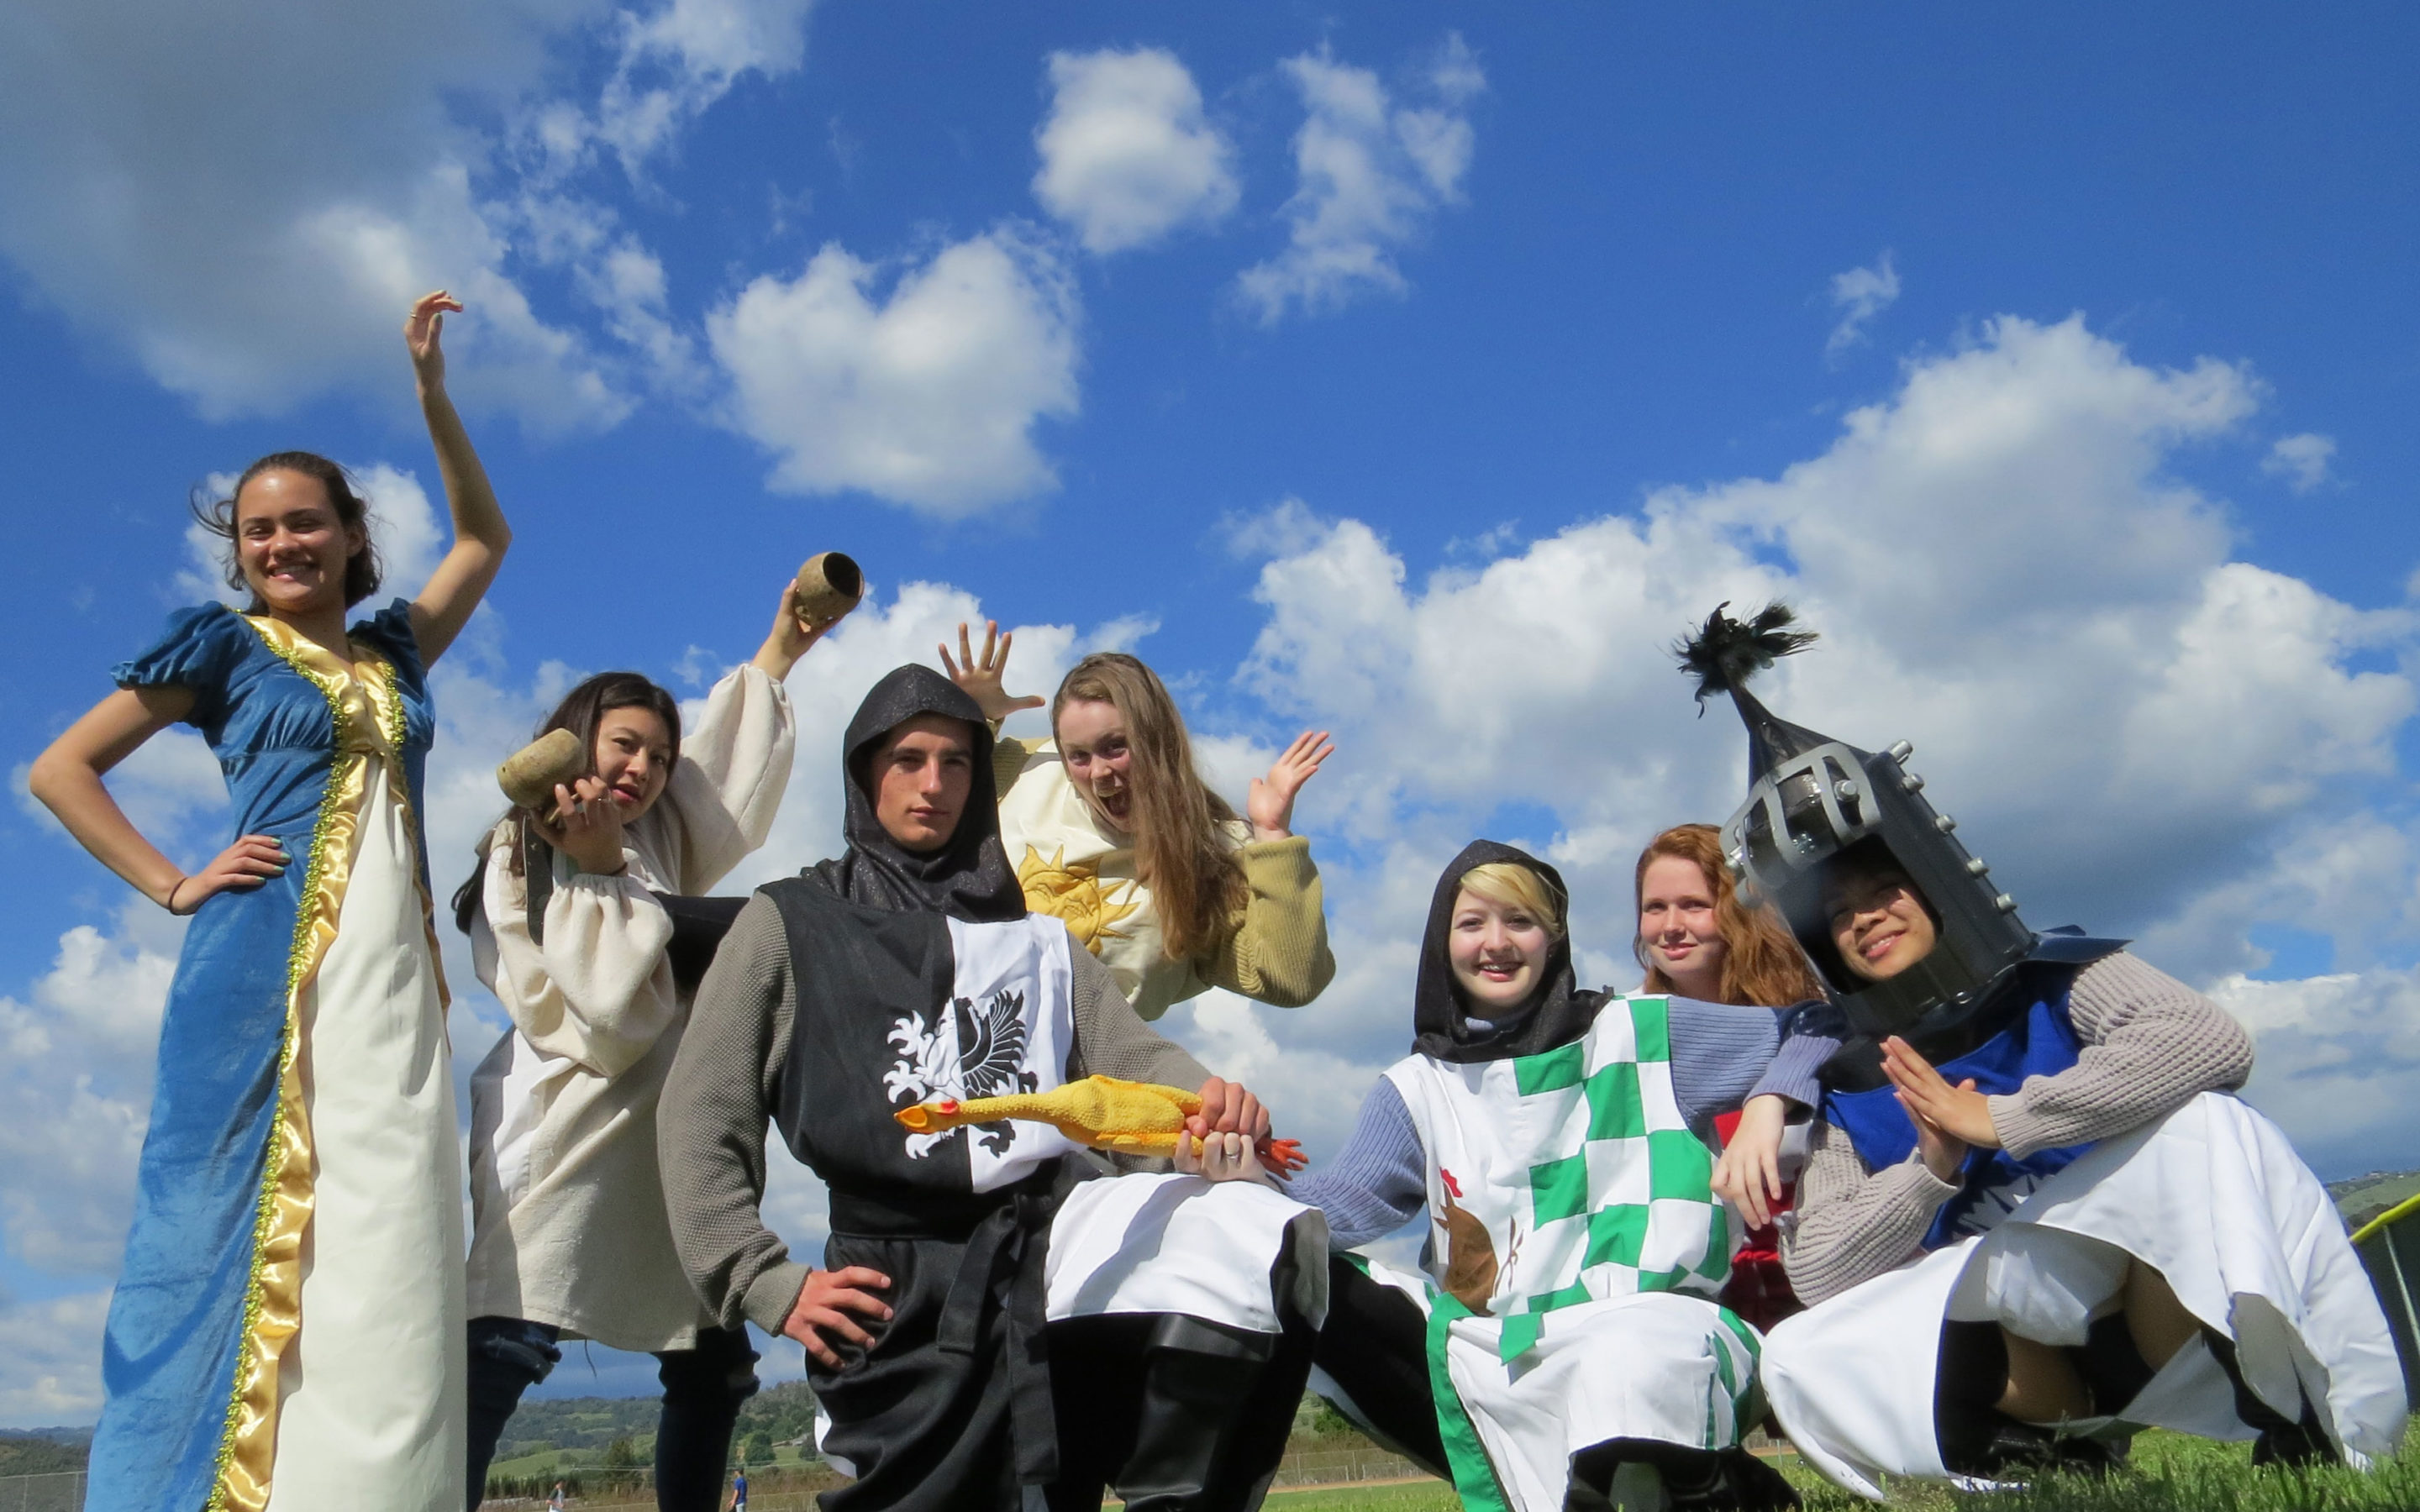 Main story – LOHS students perform hysterically funny Monty Python spoof